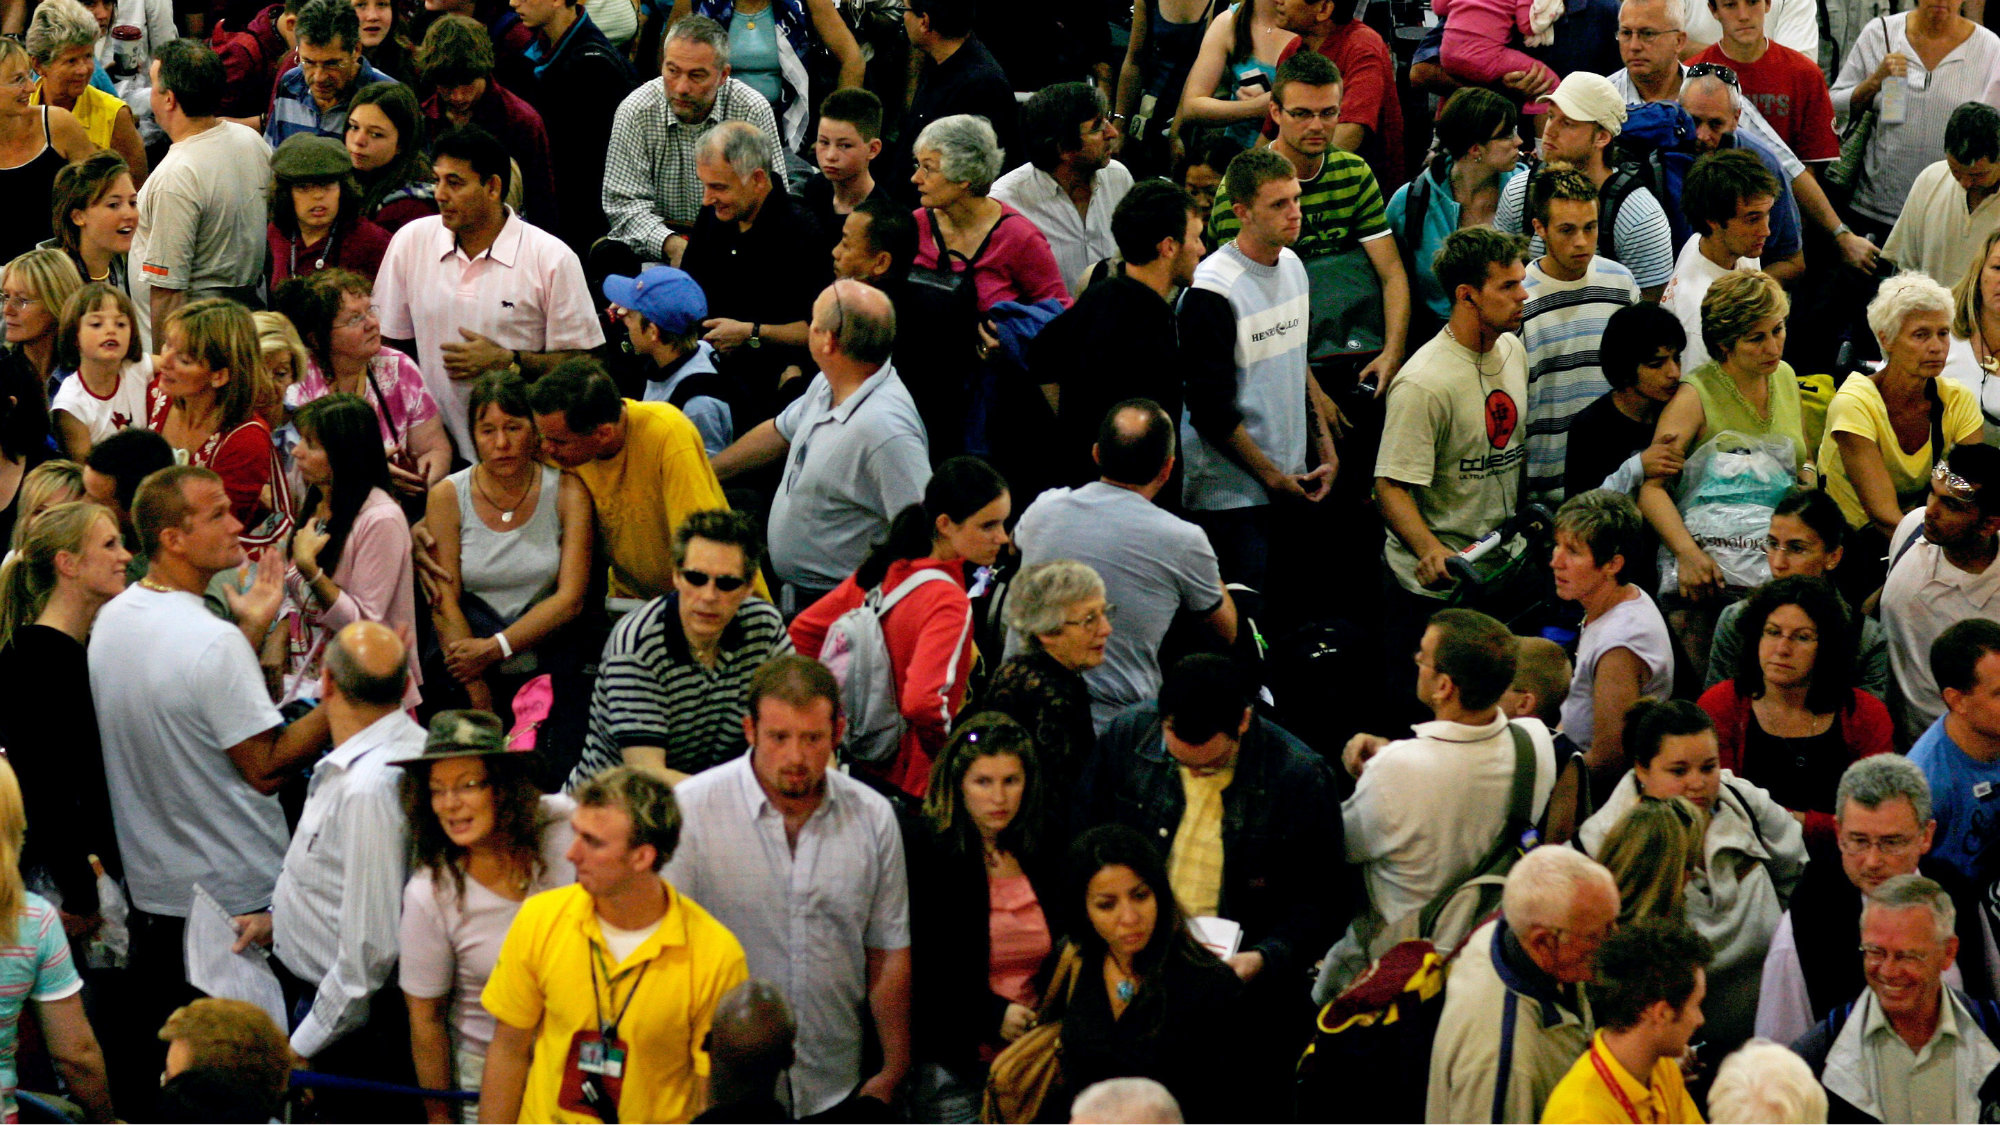 Travellers queue at Gatwick international airport on the outskirts of London.